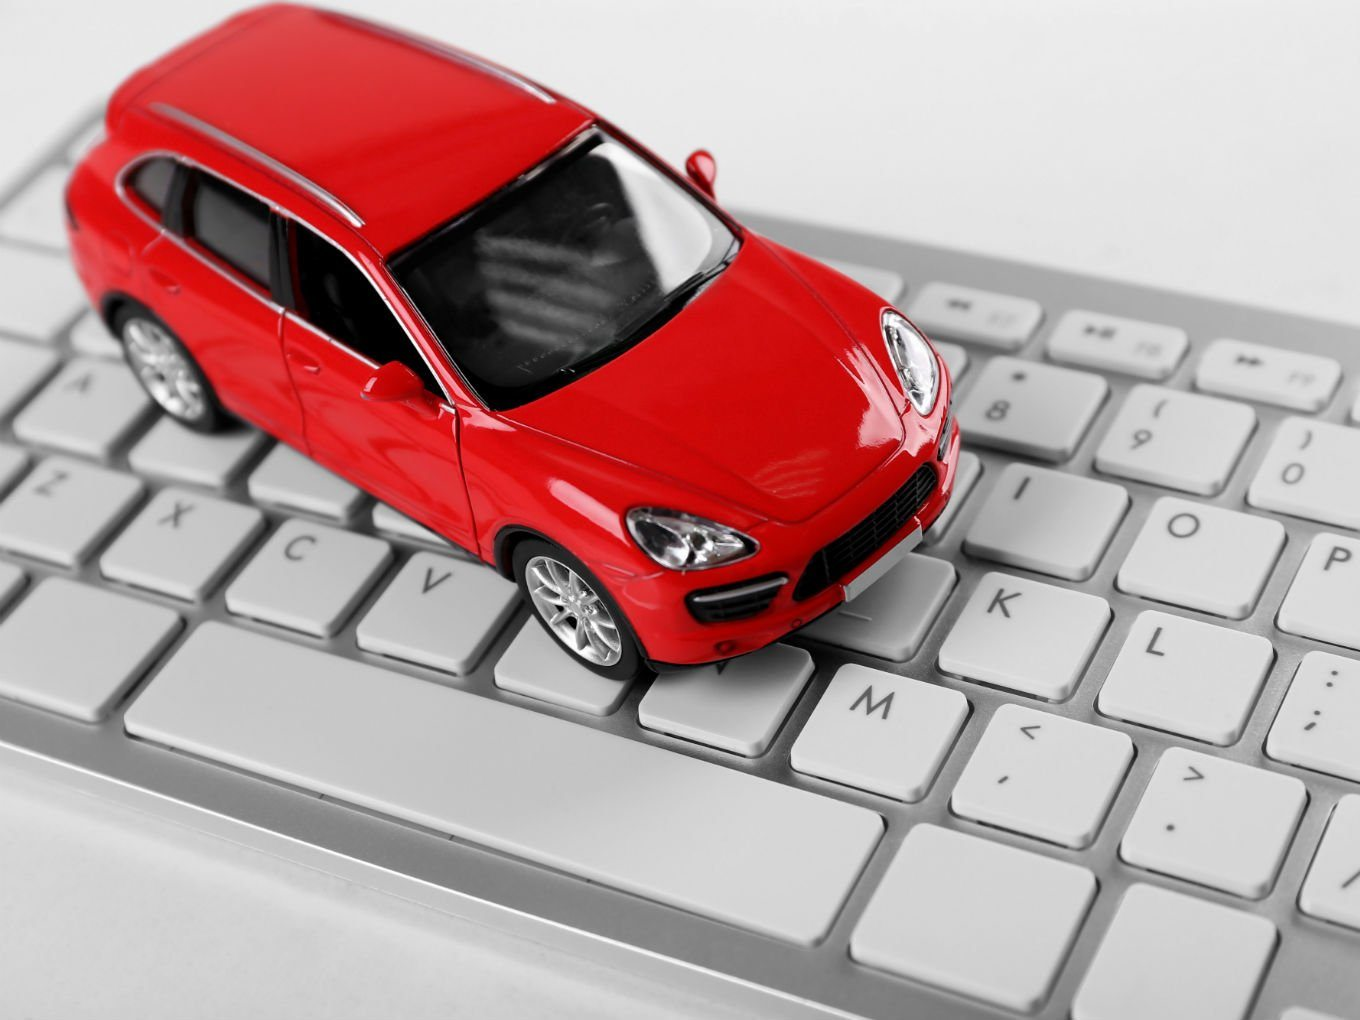 Weekly funding: CarDekho zooms ahead with $250m top up